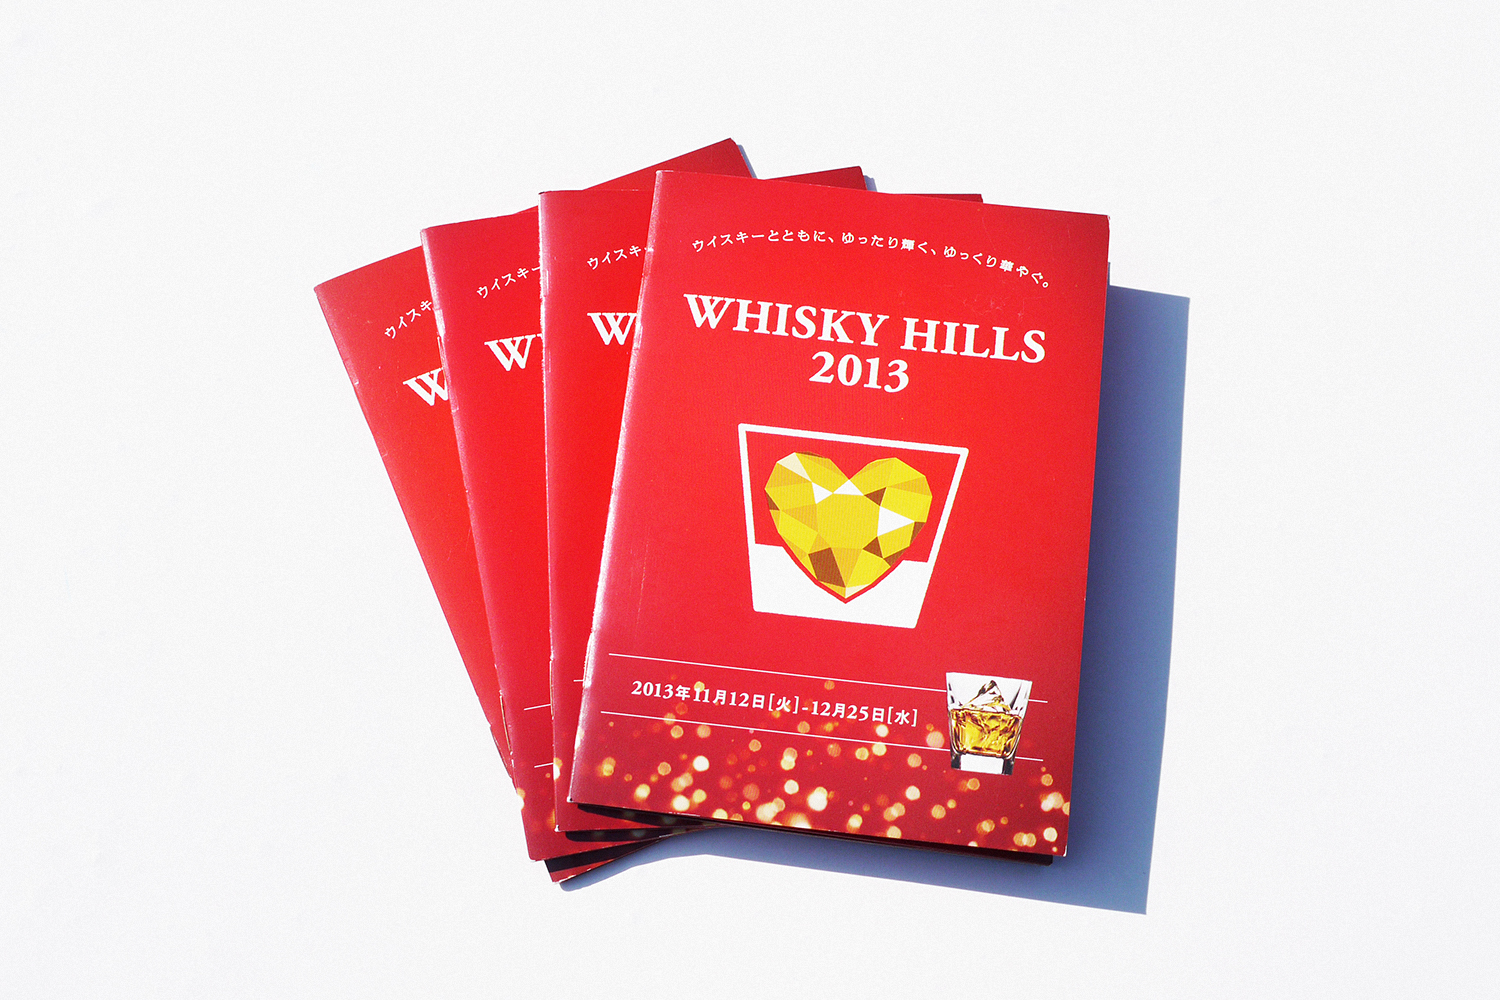 whiskyhills13_003